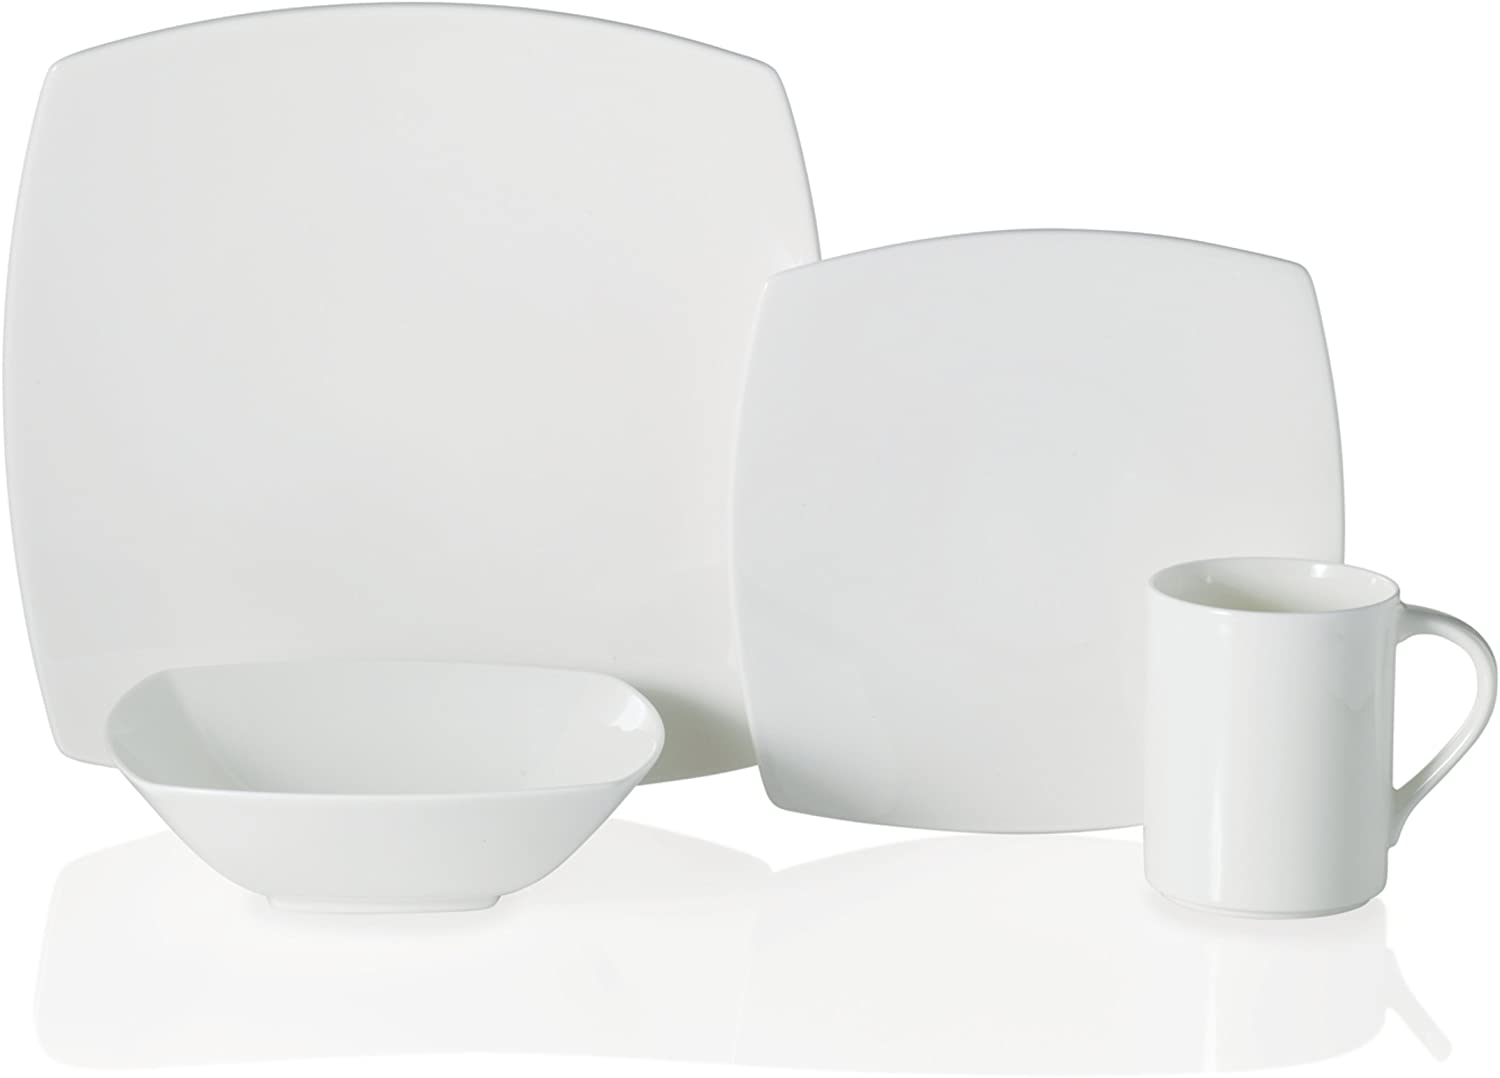 Mikasa Elegance White 4-Piece Place Setting, Service for 1